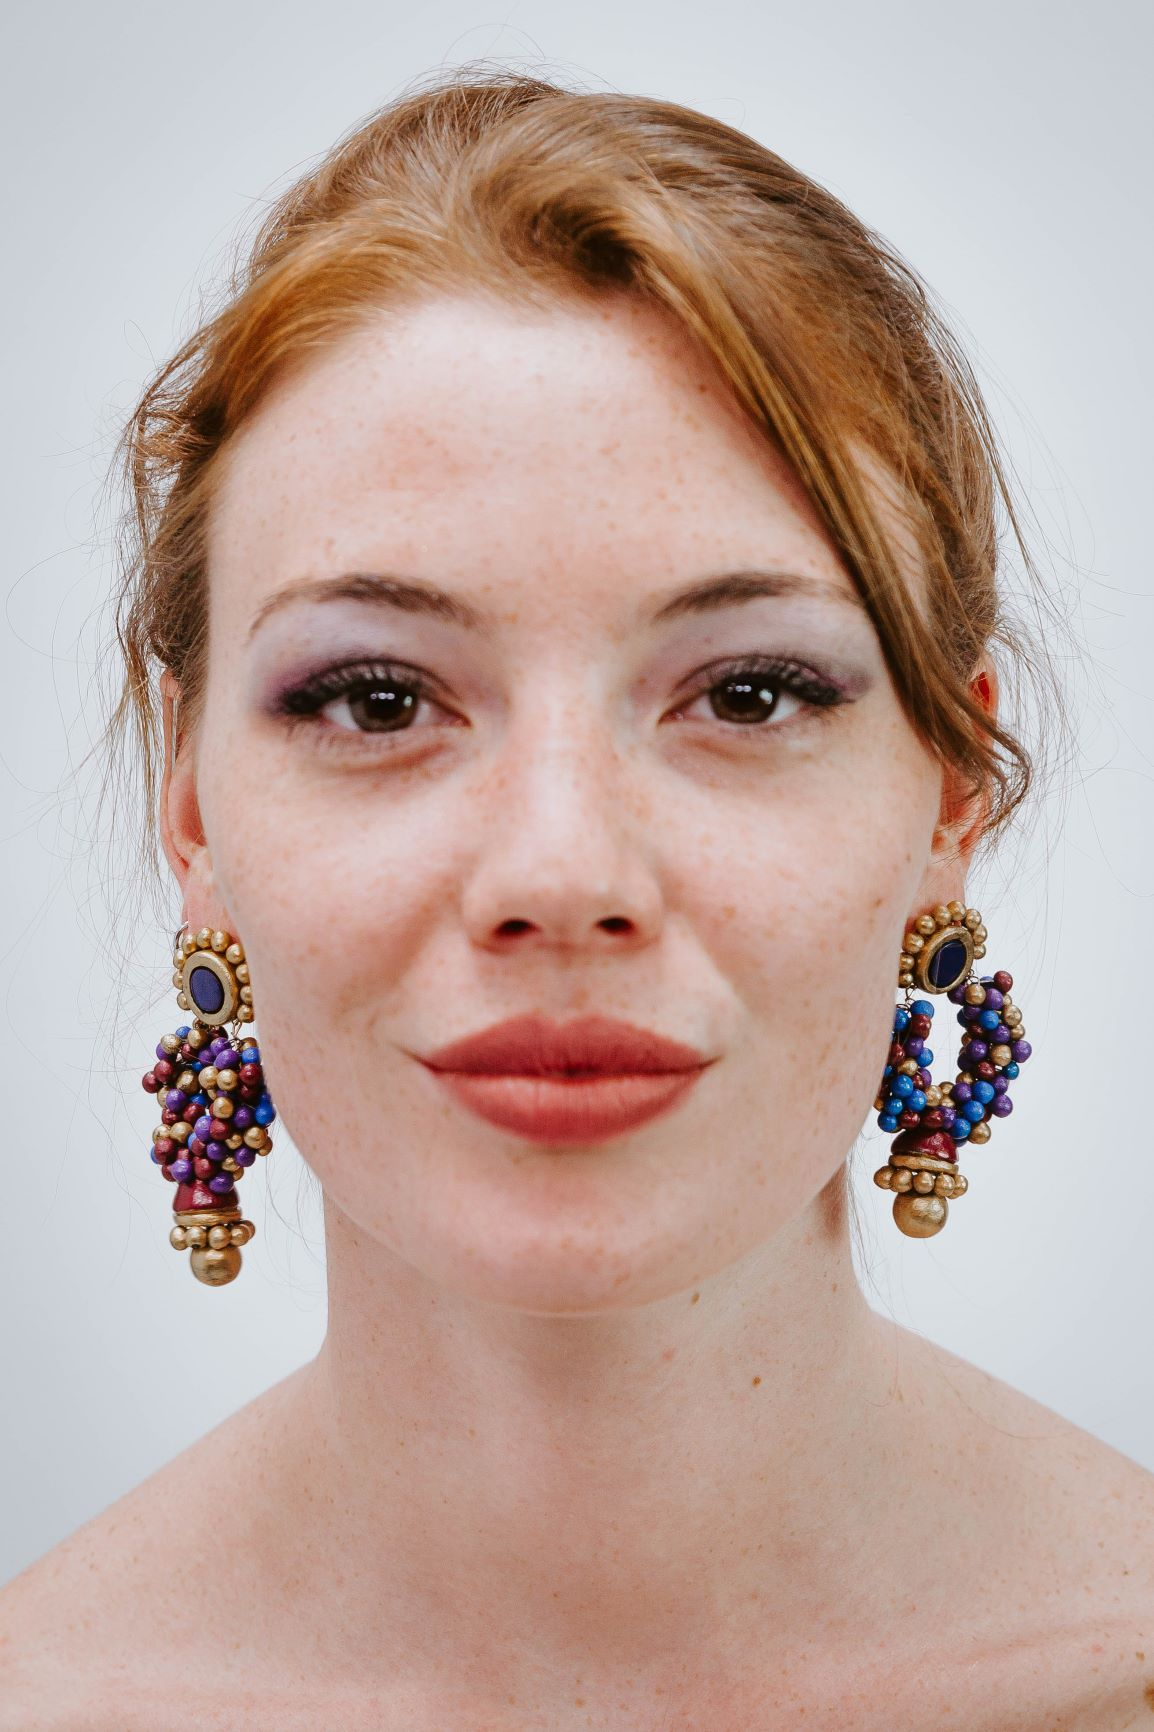 Grappe Raisin Multicolore - Boucles d'oreilles - Azaadi, la mode responsable accessible